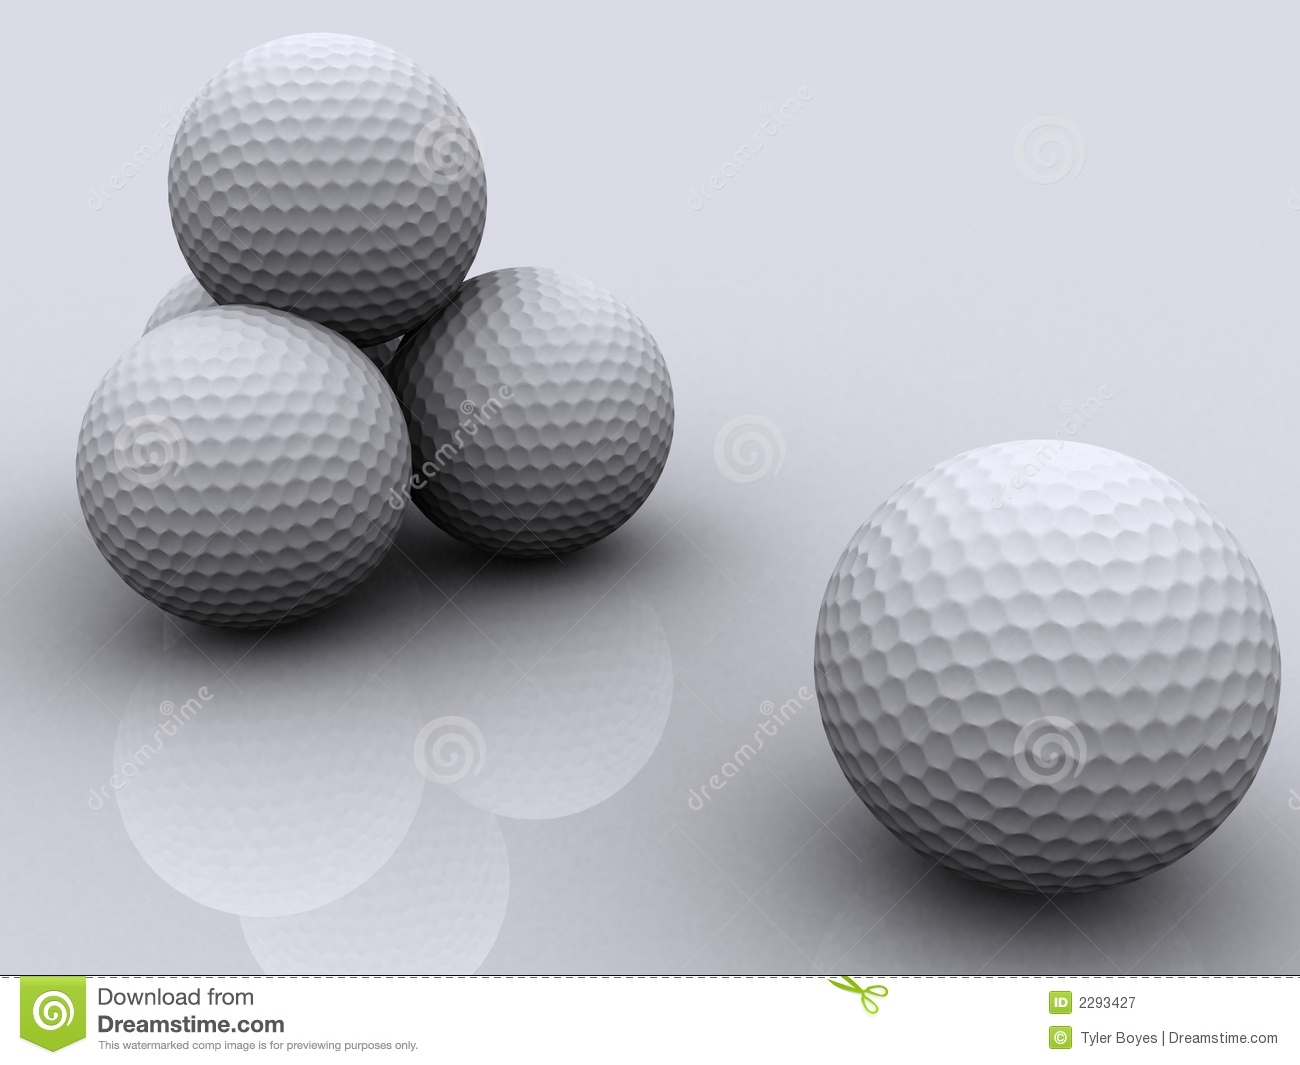 Billes de golf